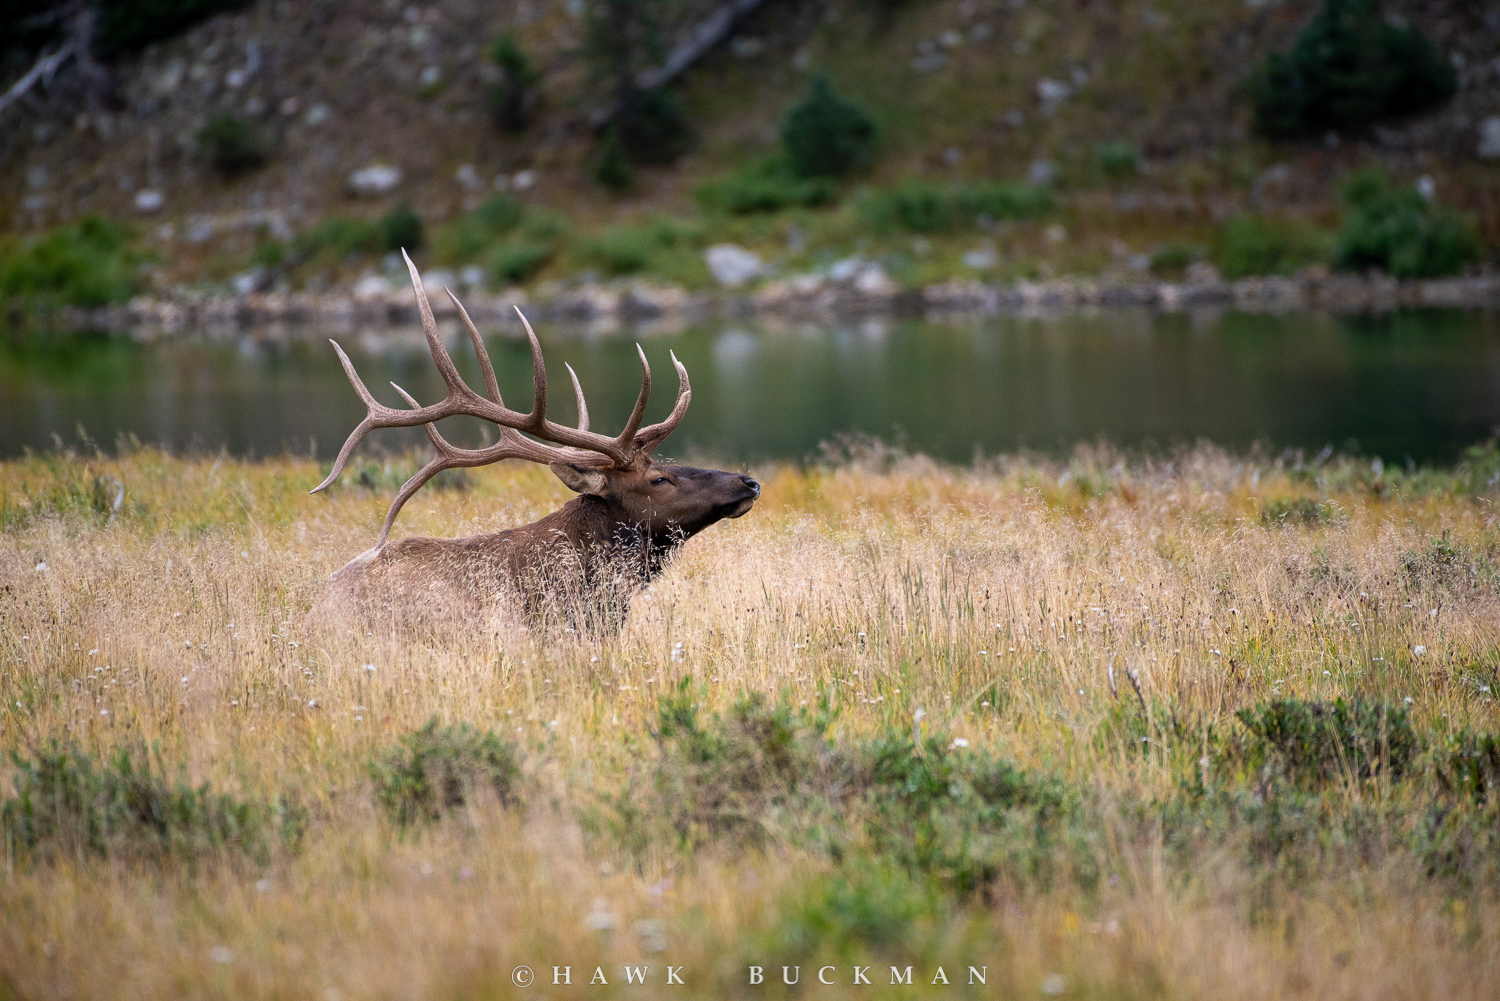 Rocky Mountain elk (Cervus elaphus nelsoni) in Tall Grass